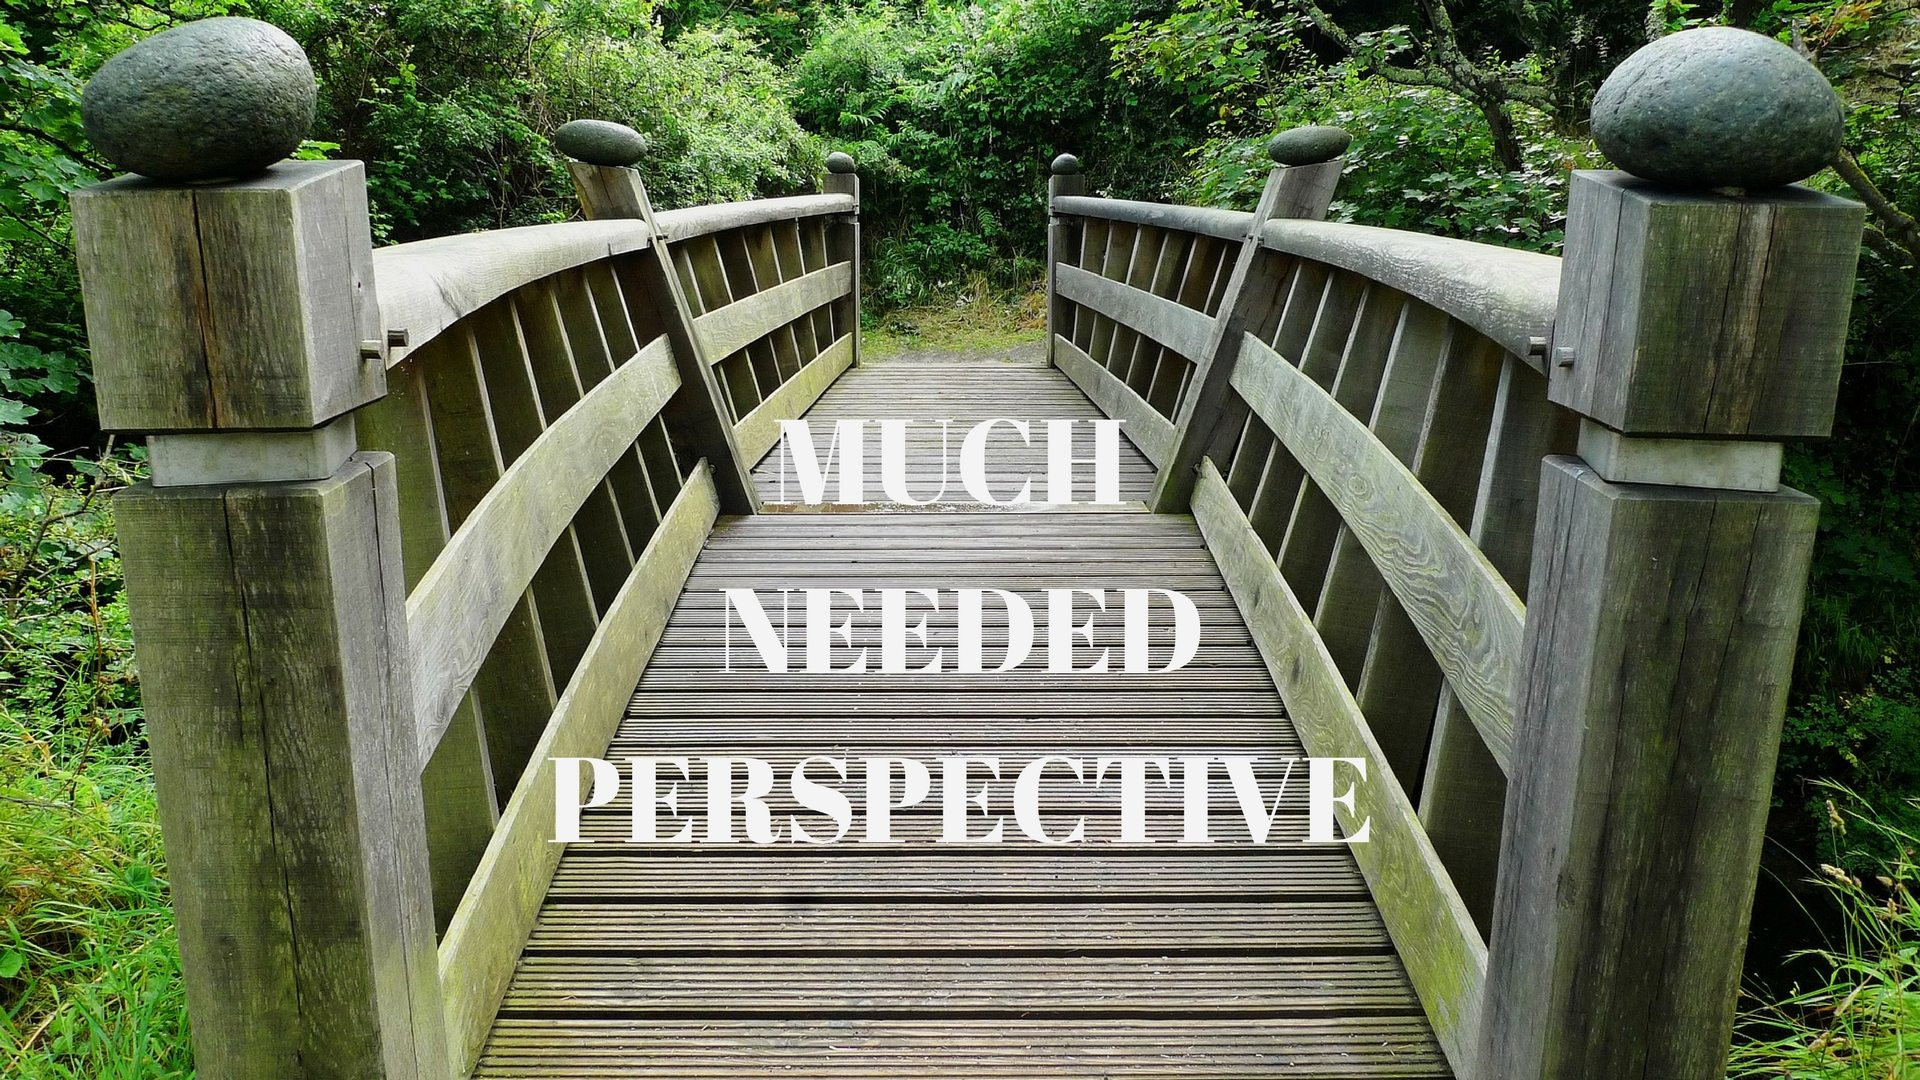 Much Needed Perspective Pixabay Canva